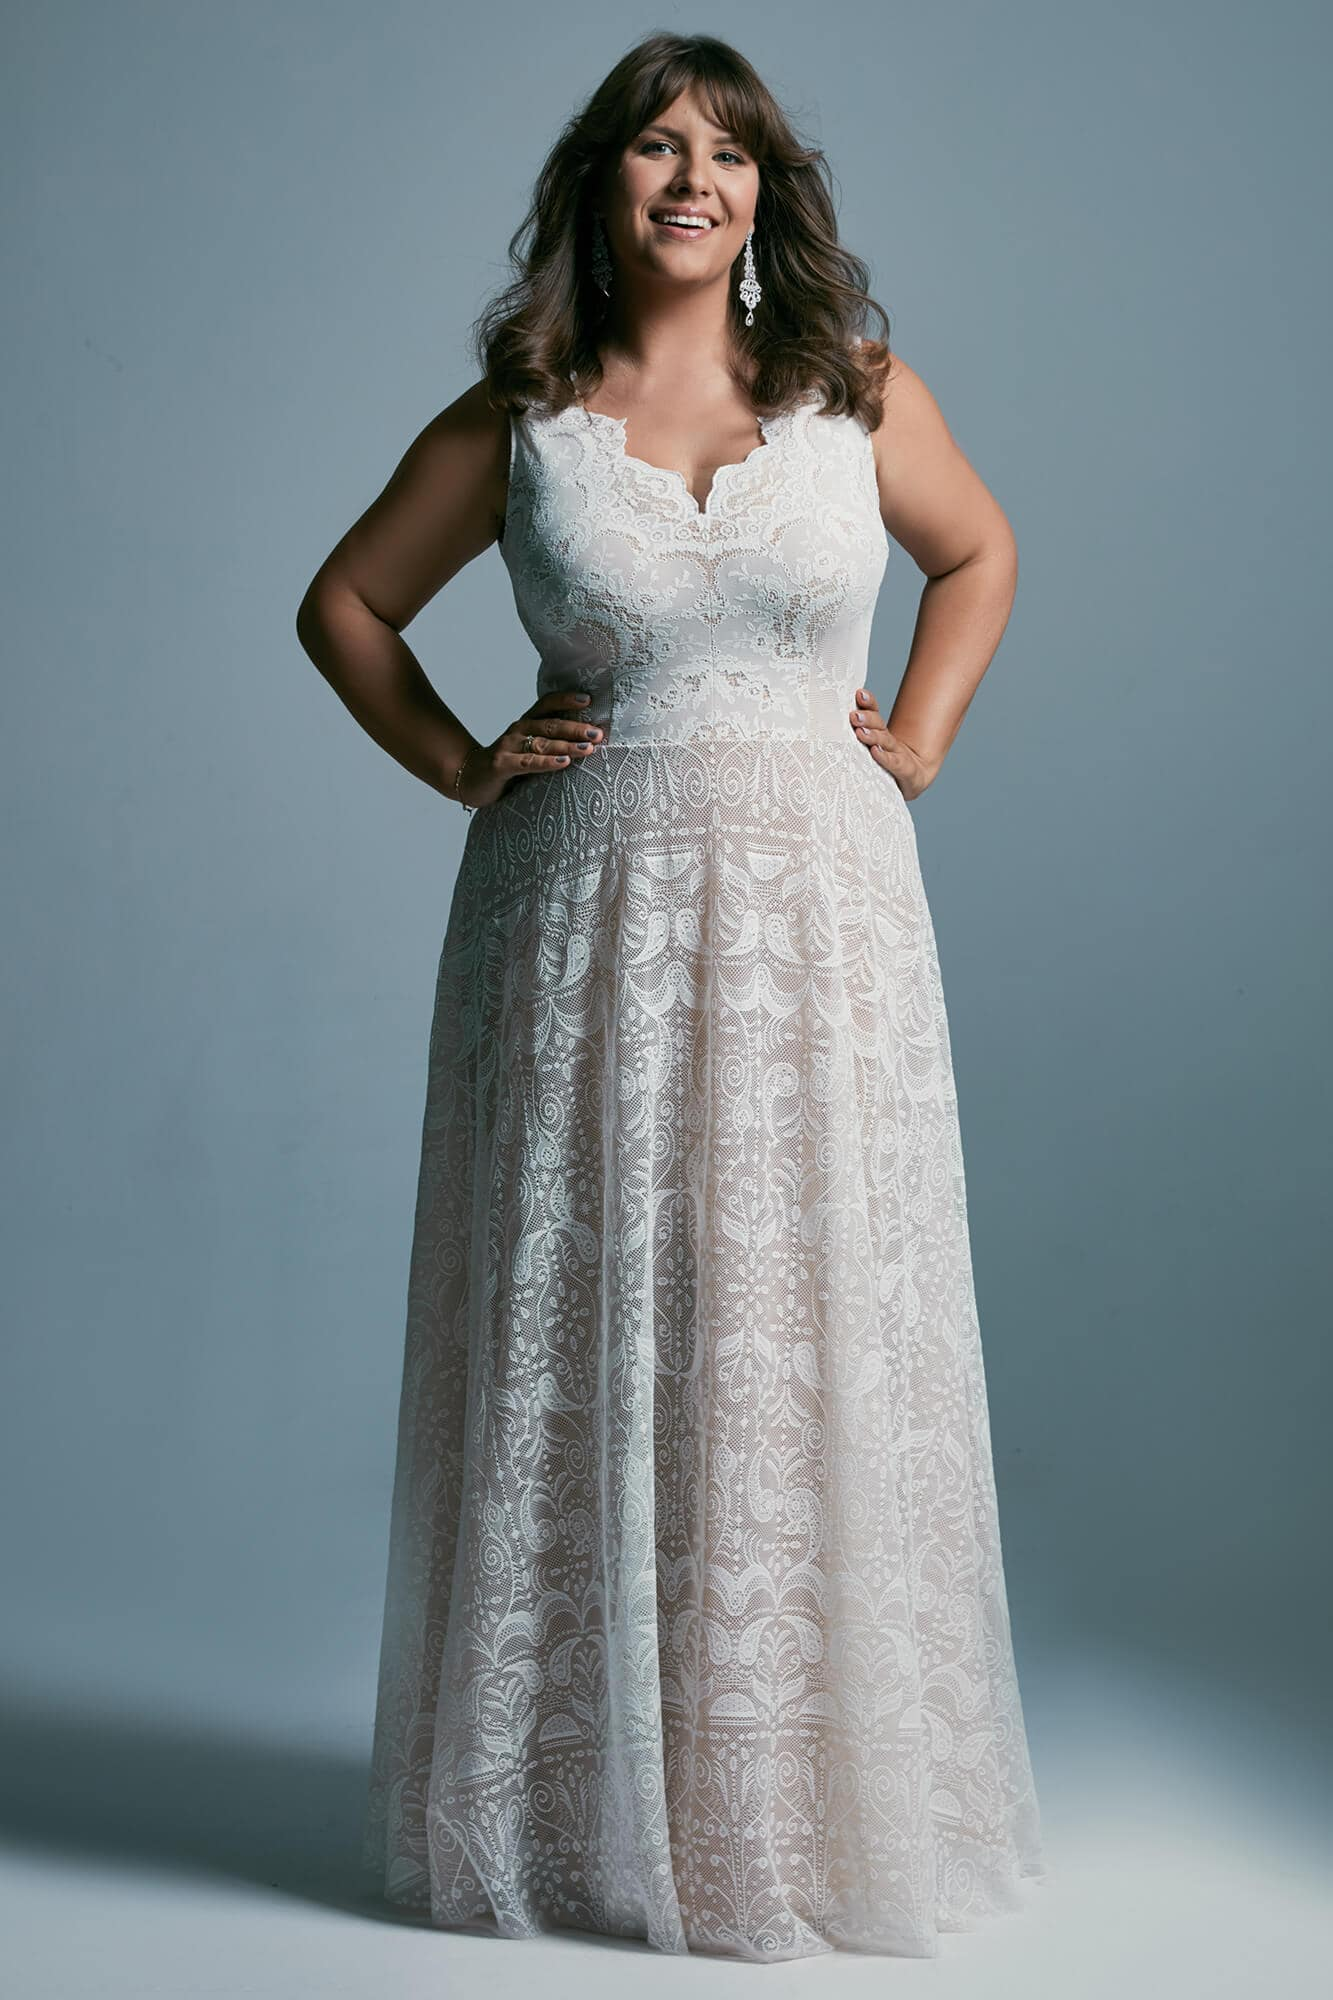 Plus size wedding dress with a sloping A-shaped skirt Porto 47 plus size